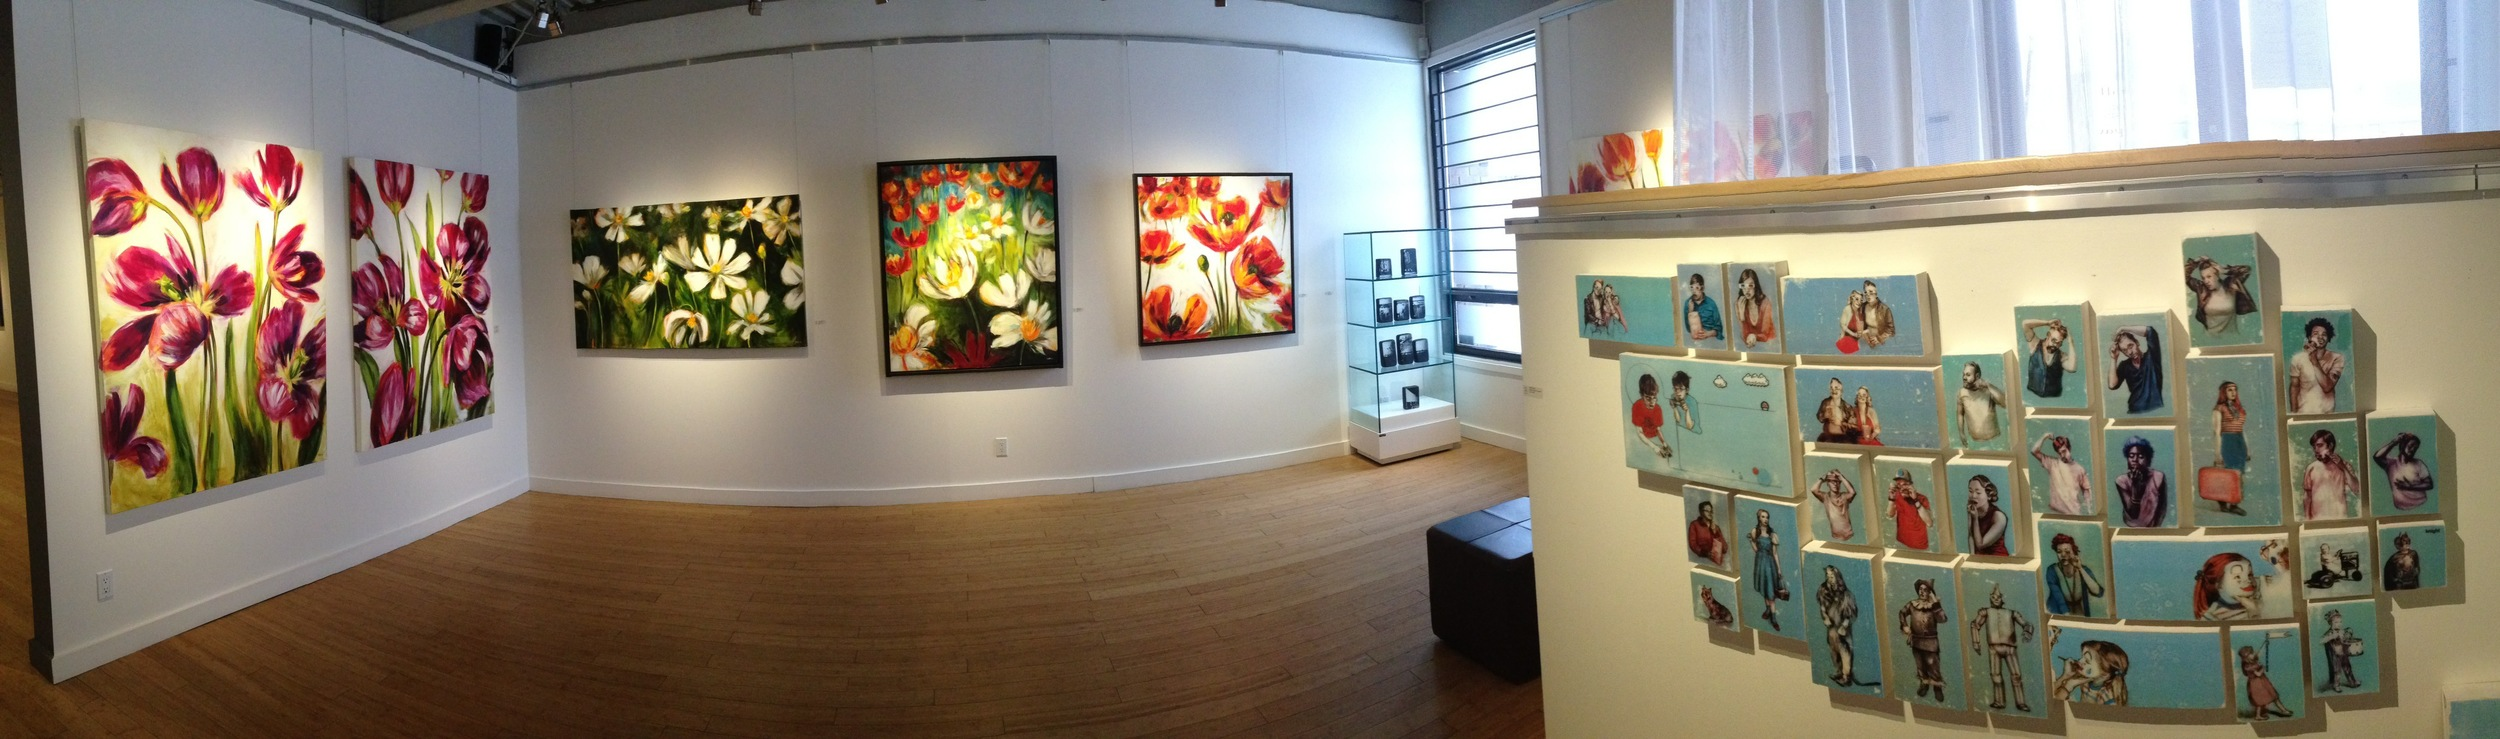 Floral paintings by  Nathalie Mantha , glass photo box series by  Nick Chase , and collection of works by  Kelly Grace